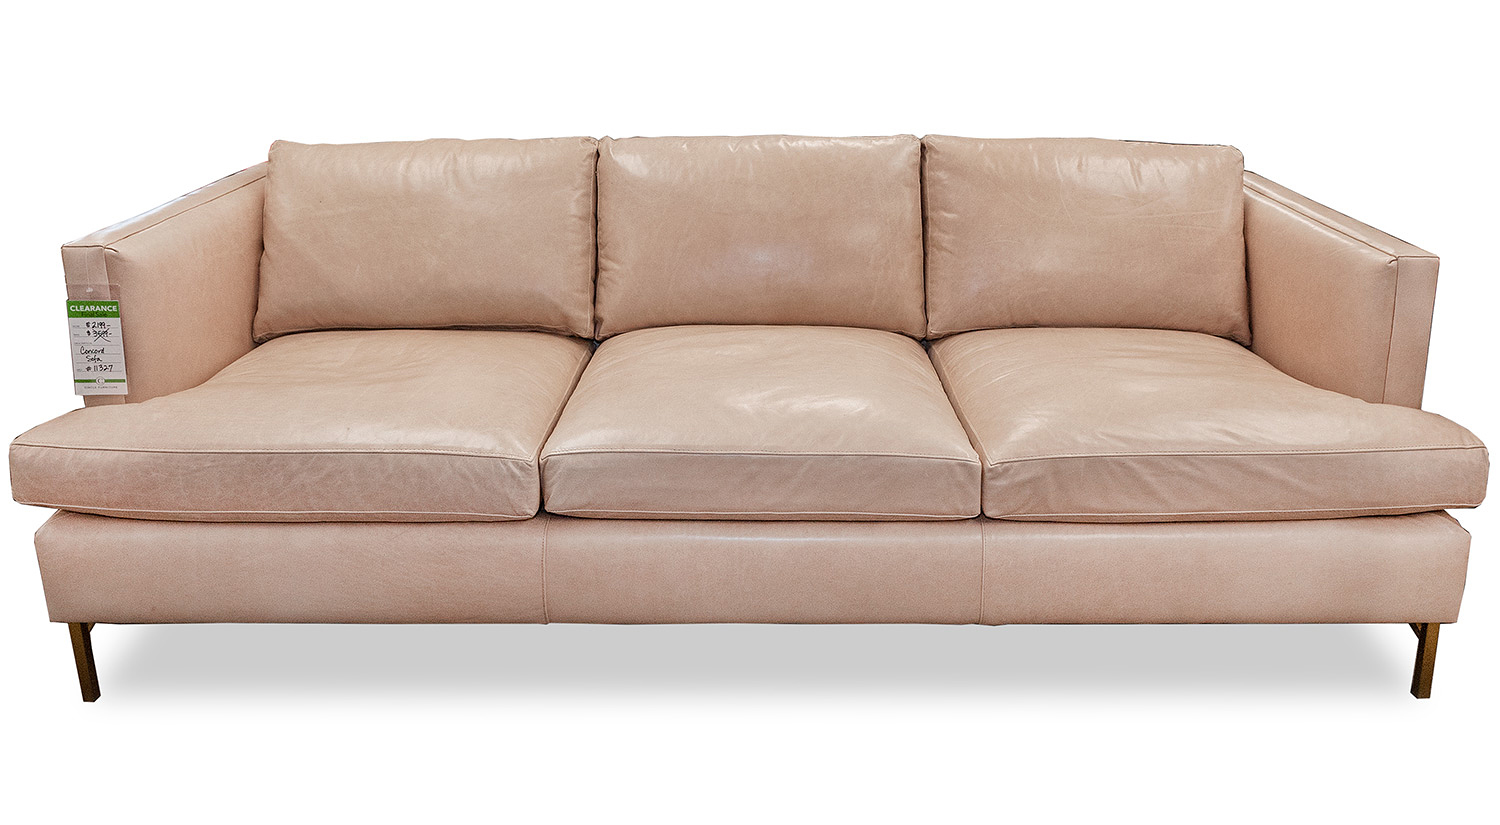 Marvelous Circle Furniture Concord Sofa In Blush Leather Ocoug Best Dining Table And Chair Ideas Images Ocougorg